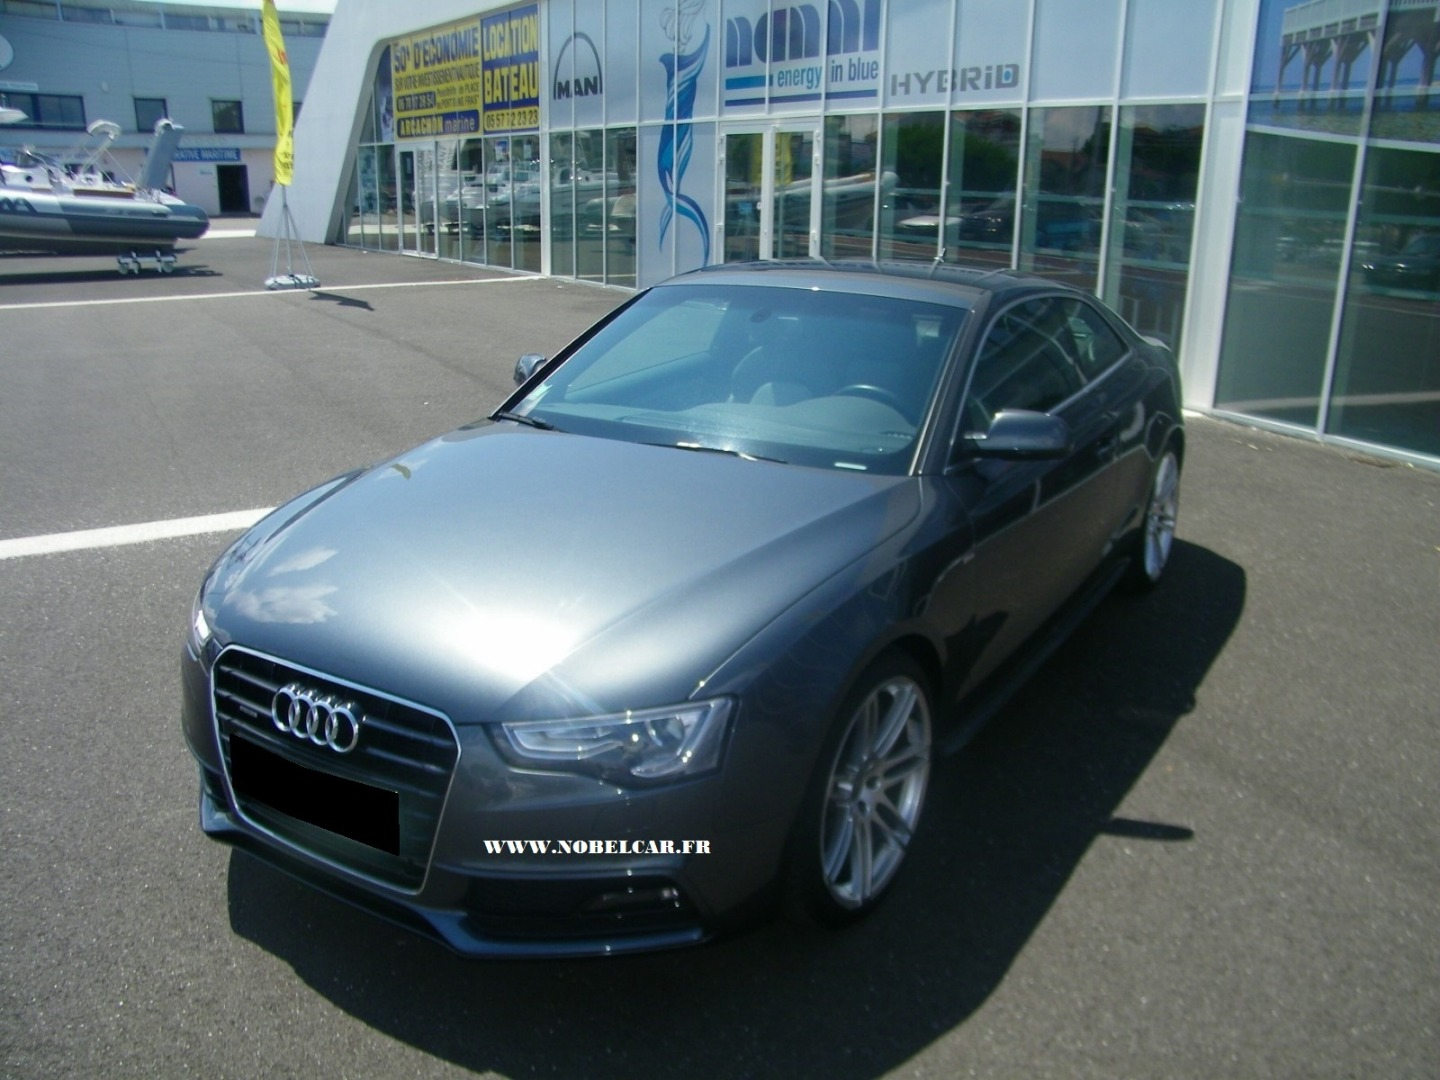 AUDI A5 COUPE V6 3.0L TDI 245CV 20558 Kms D'OCCASION GIRONDE 33